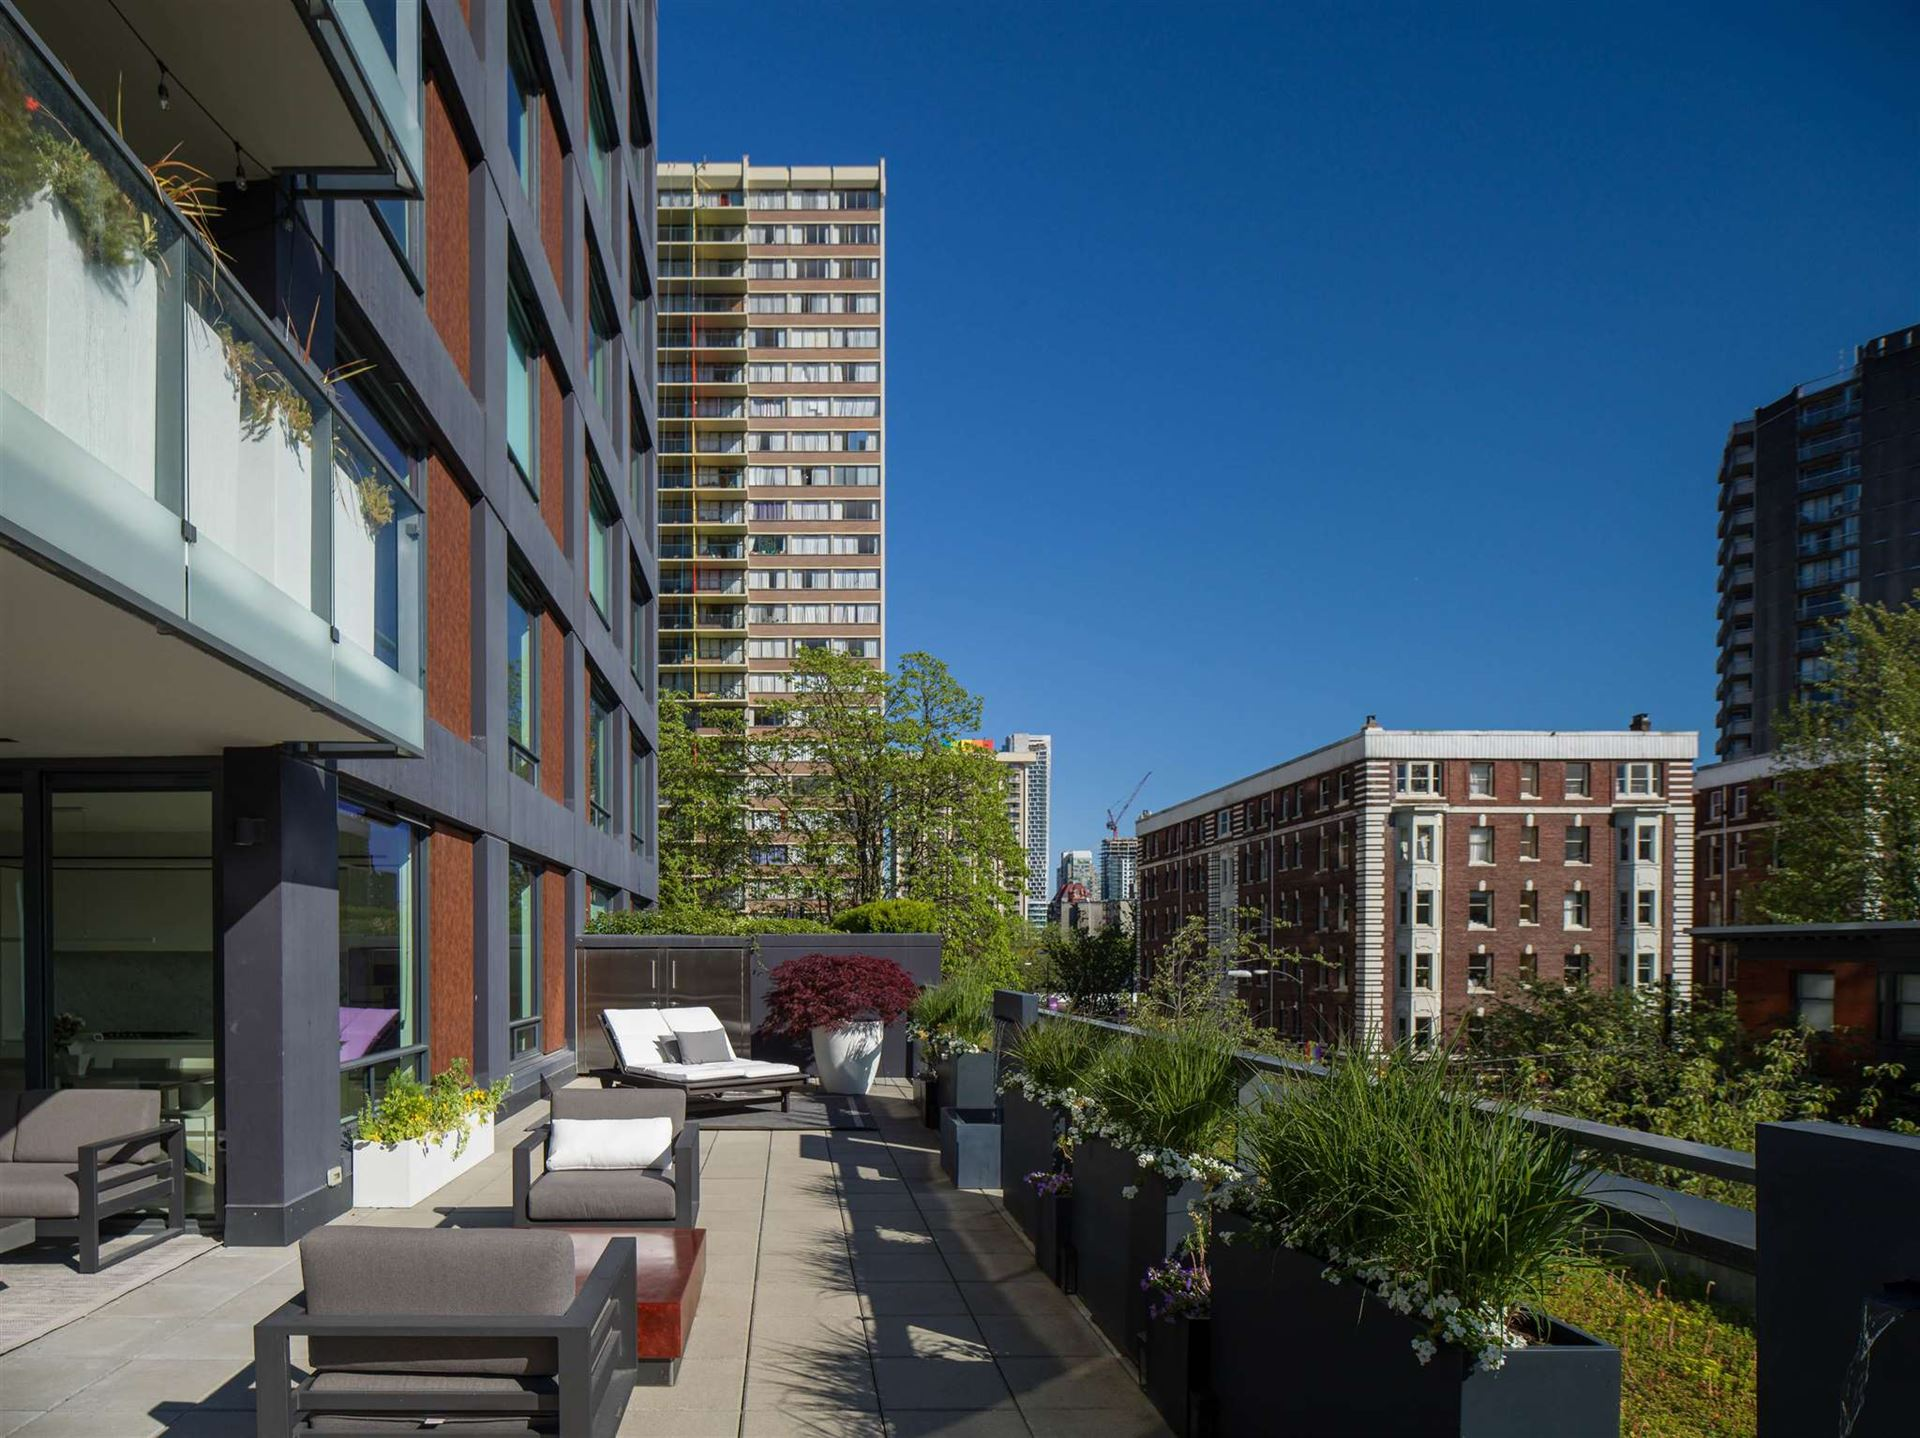 Photo for 403 1171 JERVIS STREET, Vancouver, BC V6E 0C9 (MLS # R2591528)